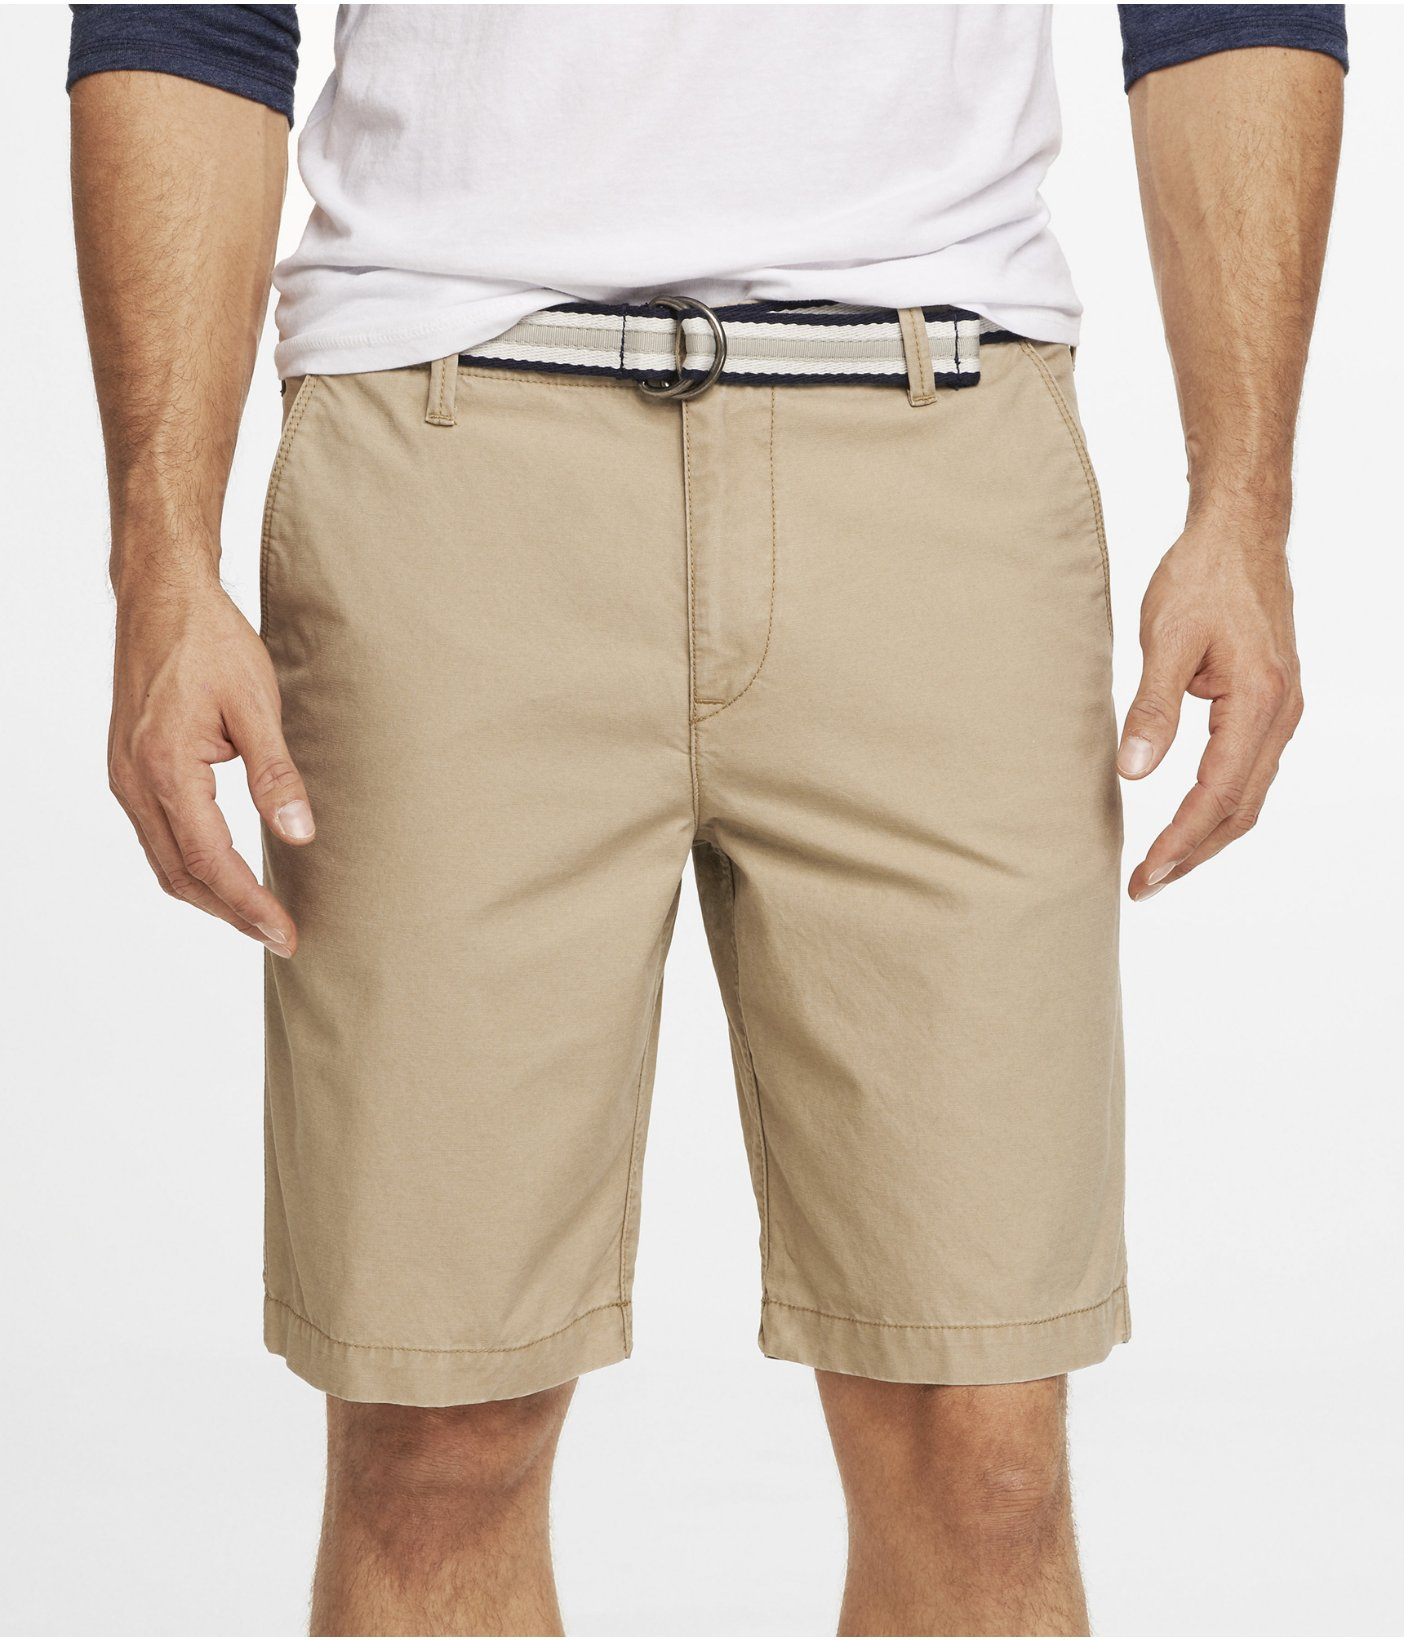 d1f9038f09 Express 10 Inch Belted Lennox Shorts in Natural for Men - Lyst